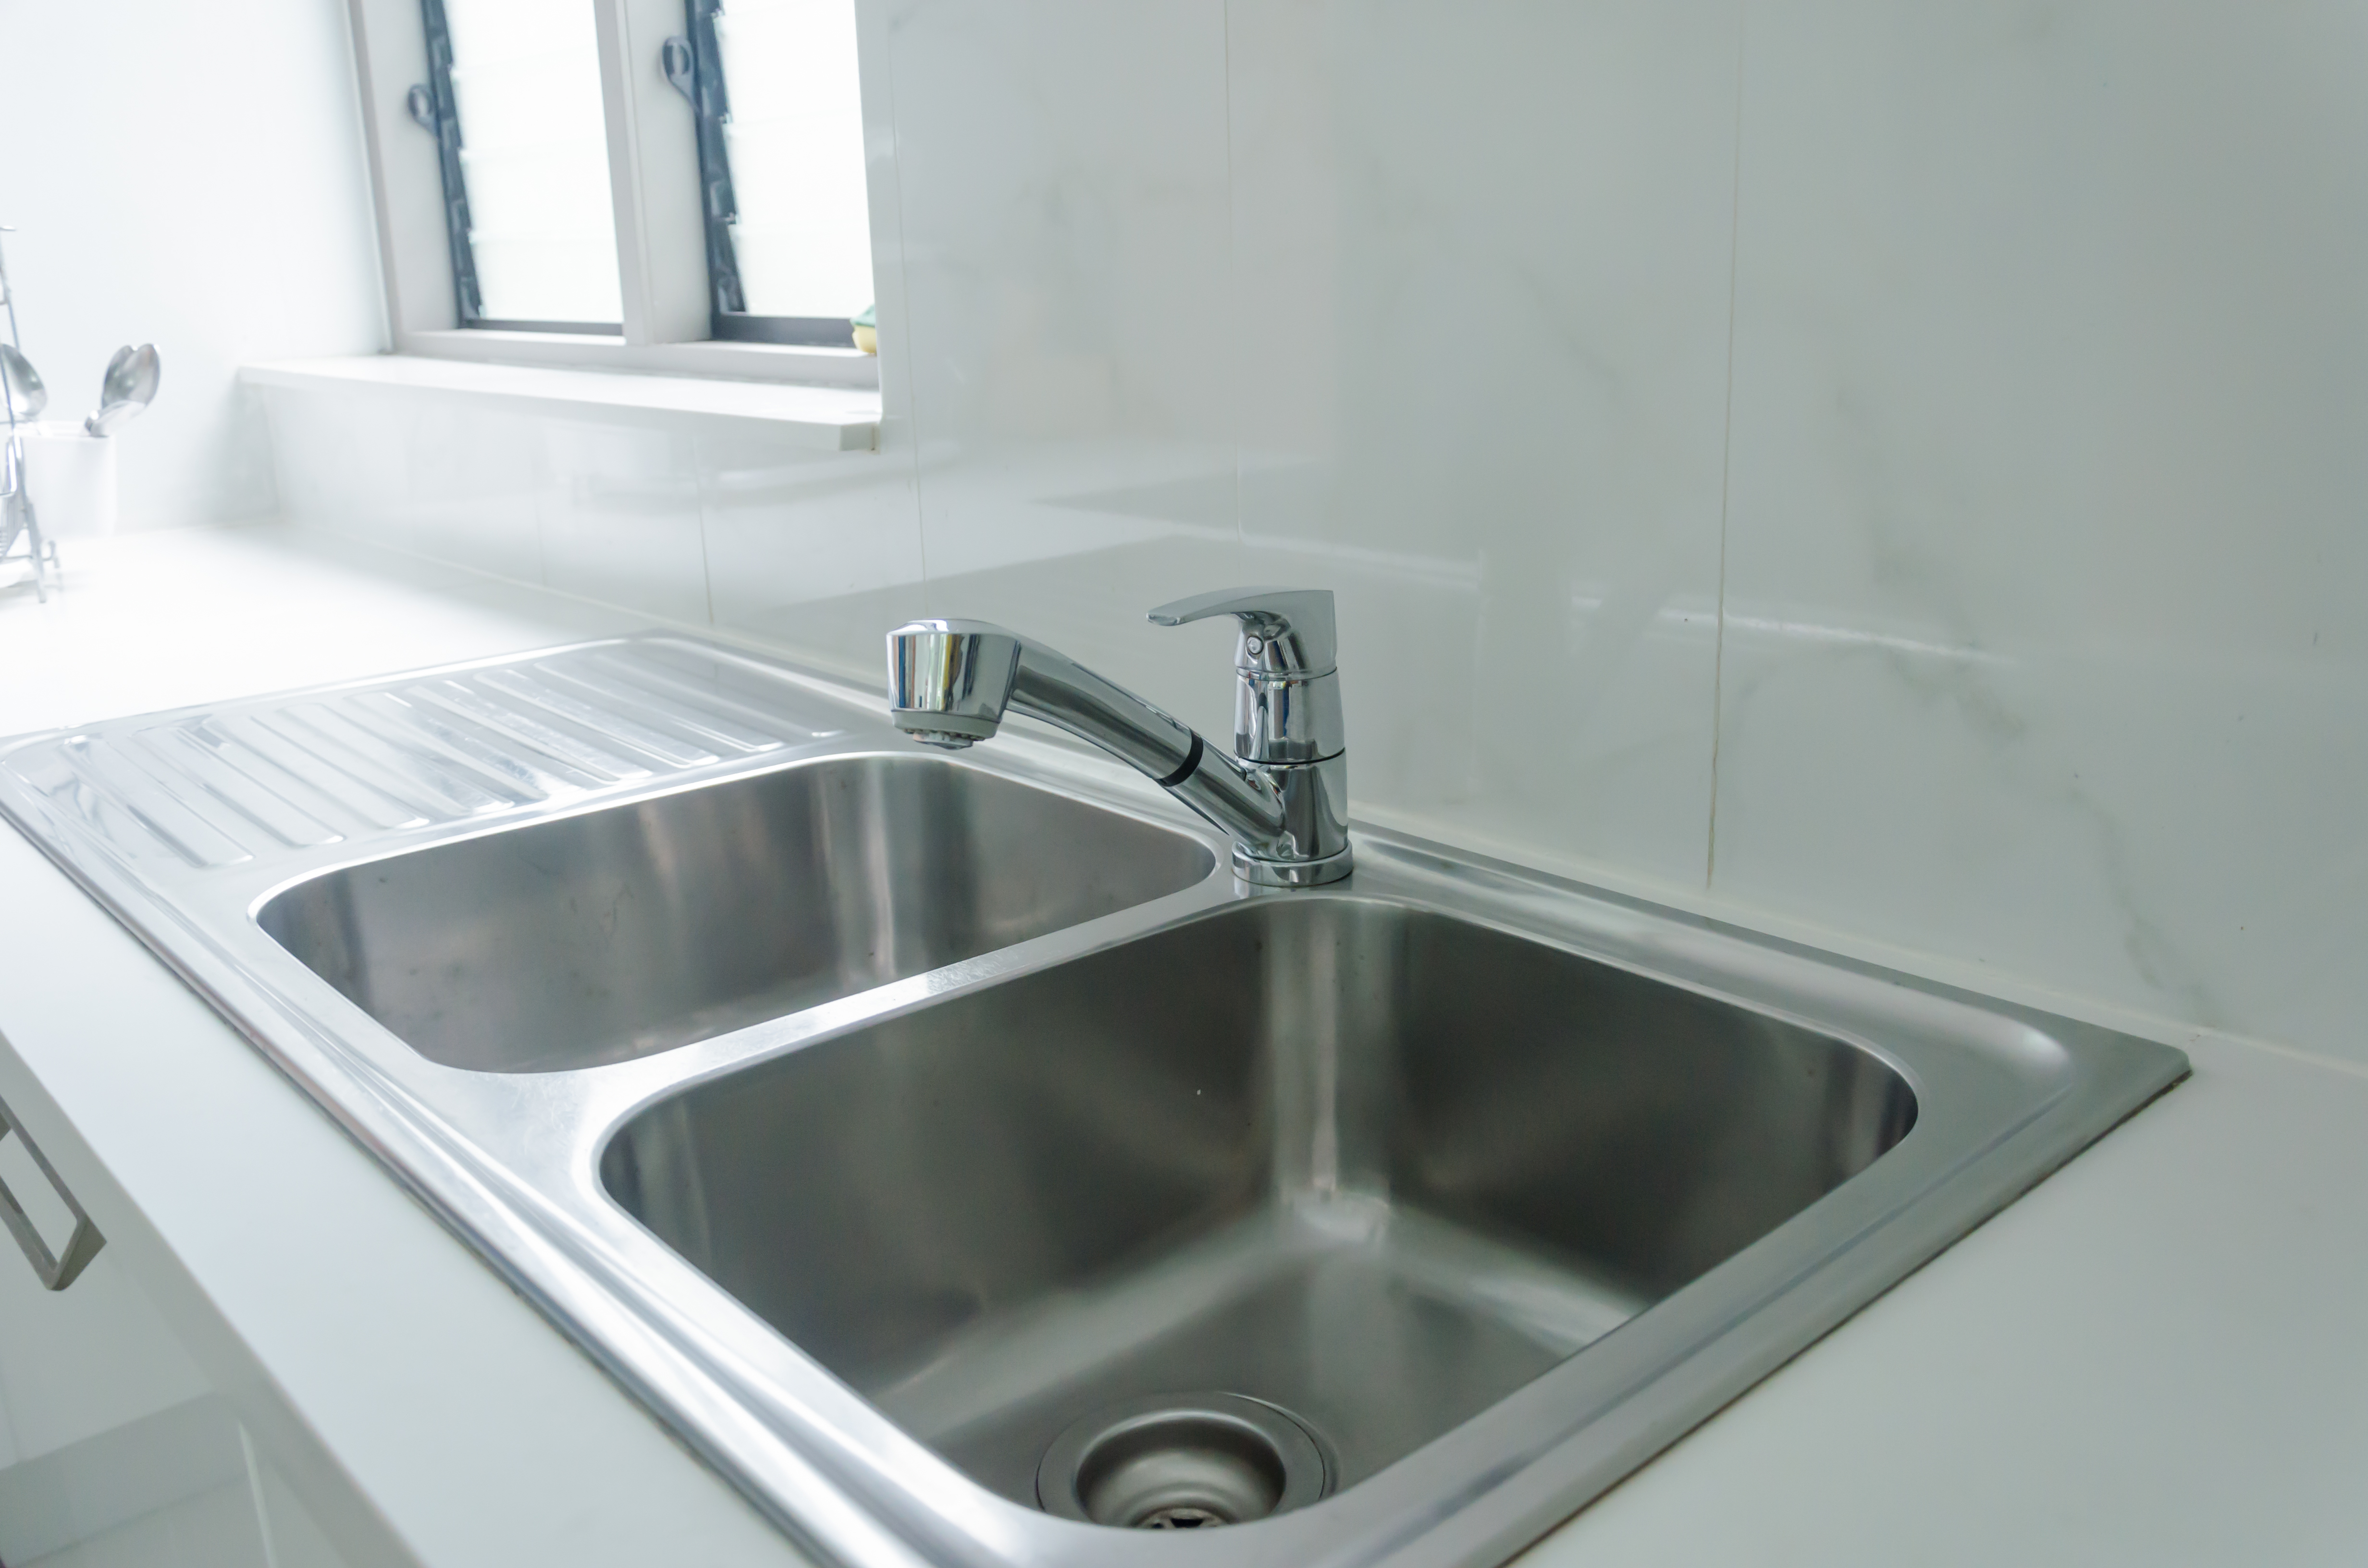 How to Fix a Slow-Draining Kitchen Sink